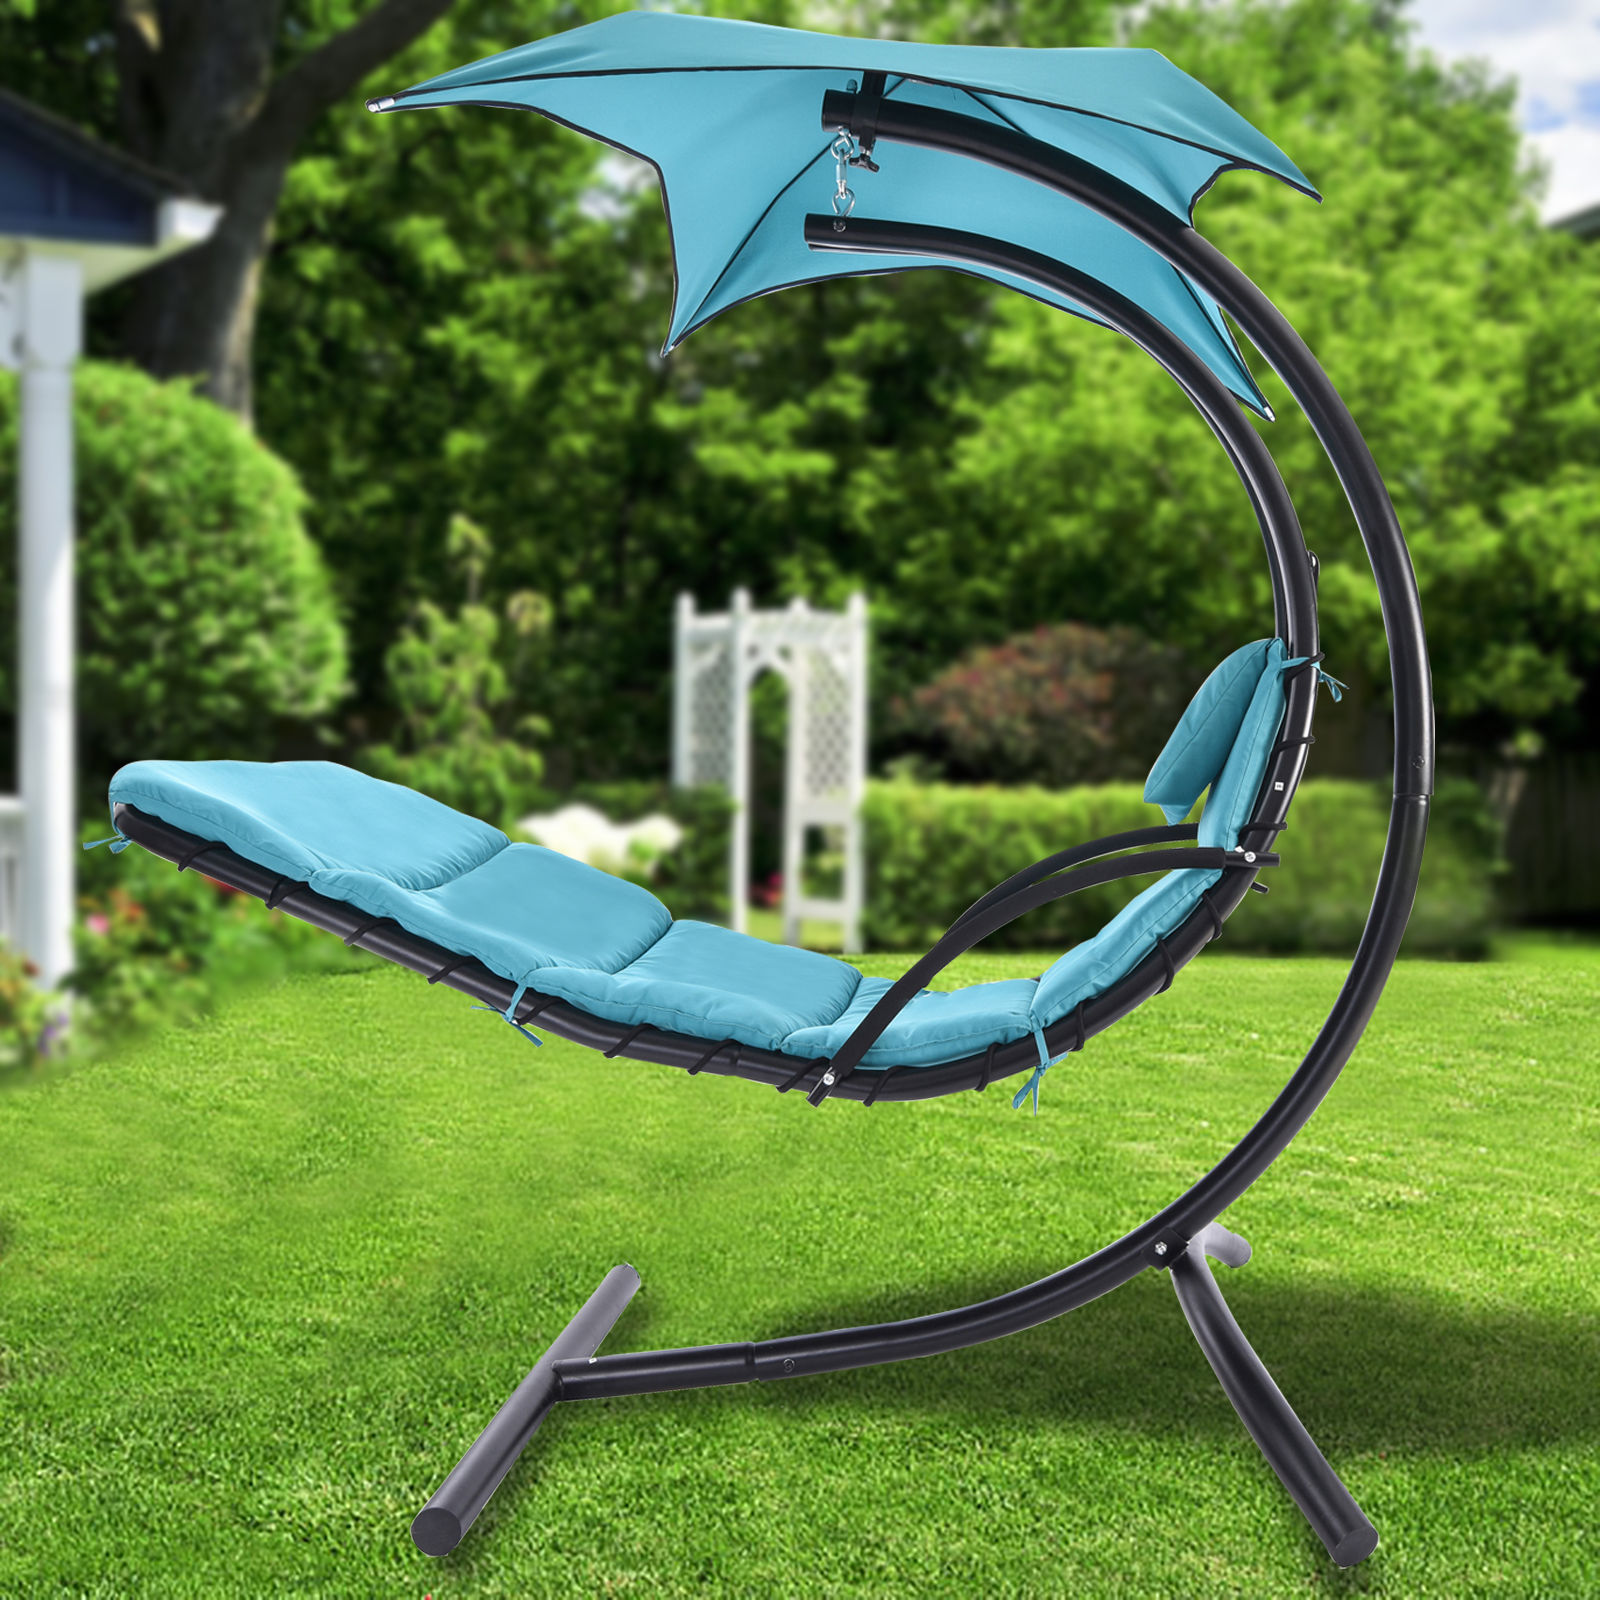 new hanging chaise lounger chair arc stand air porch swing hammock chair canopy. Black Bedroom Furniture Sets. Home Design Ideas